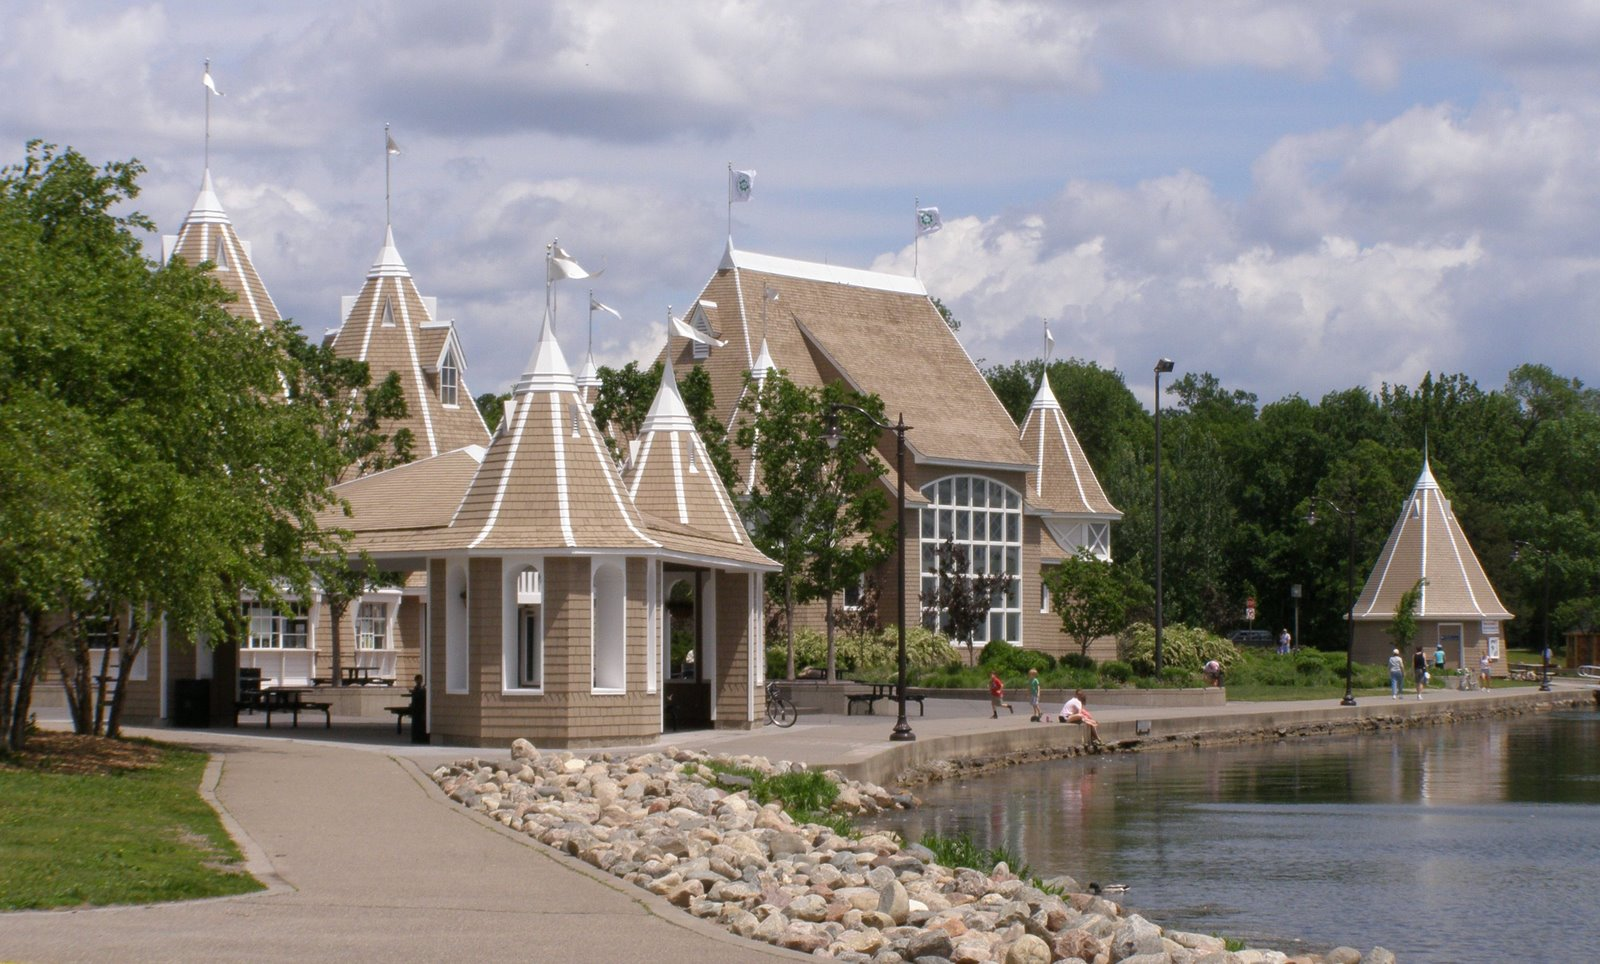 lake harriet bandshell and refectory